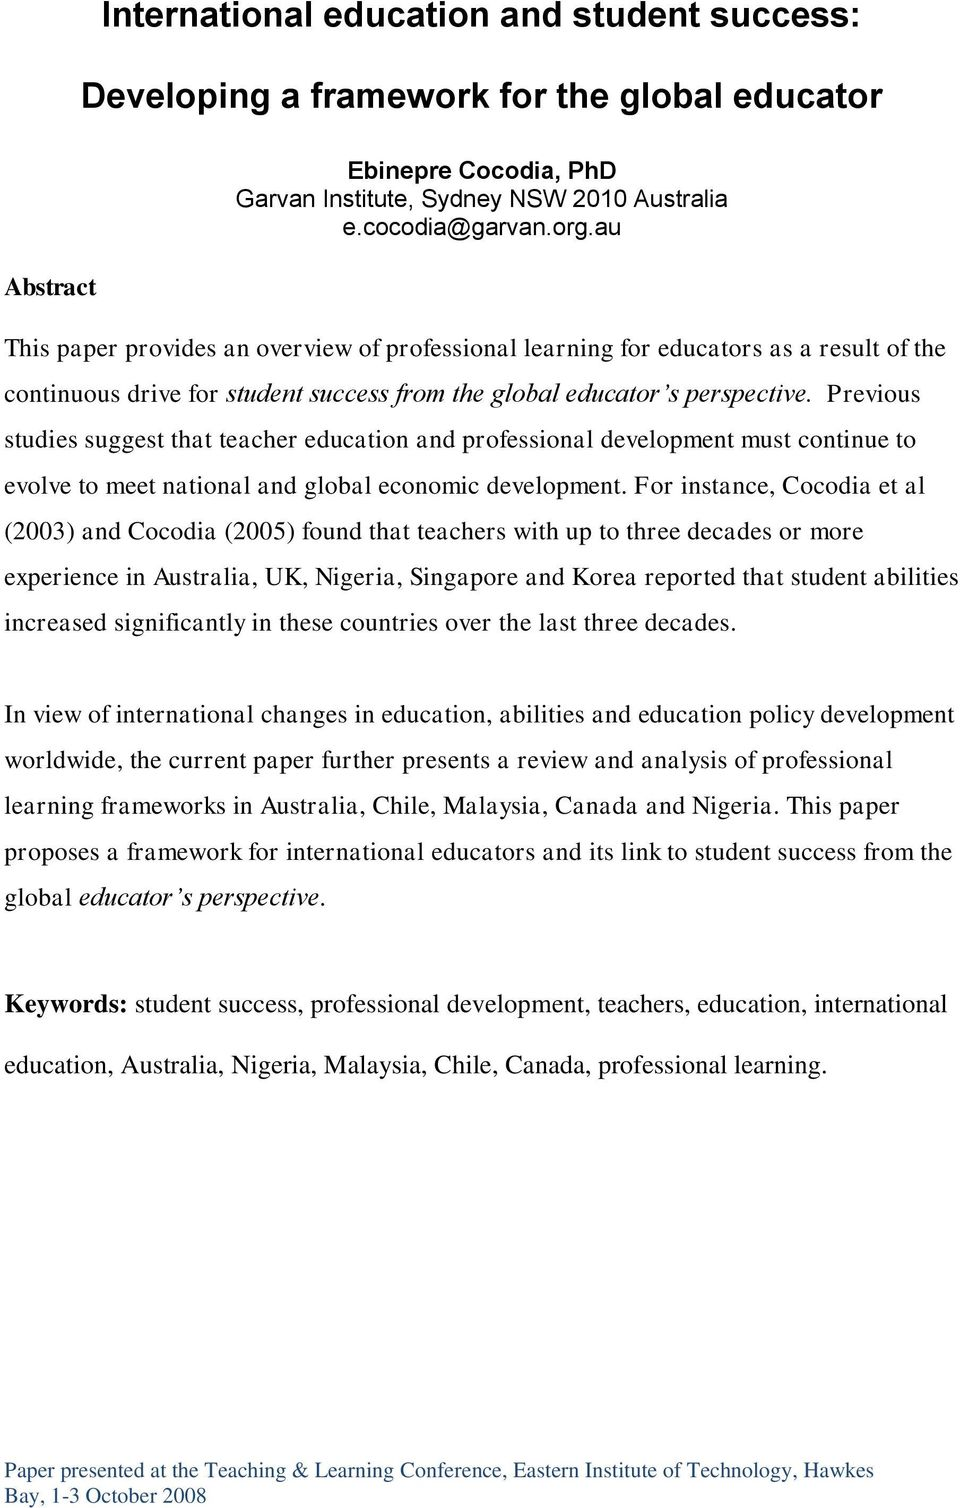 Previous studies suggest that teacher education and professional development must continue to evolve to meet national and global economic development.